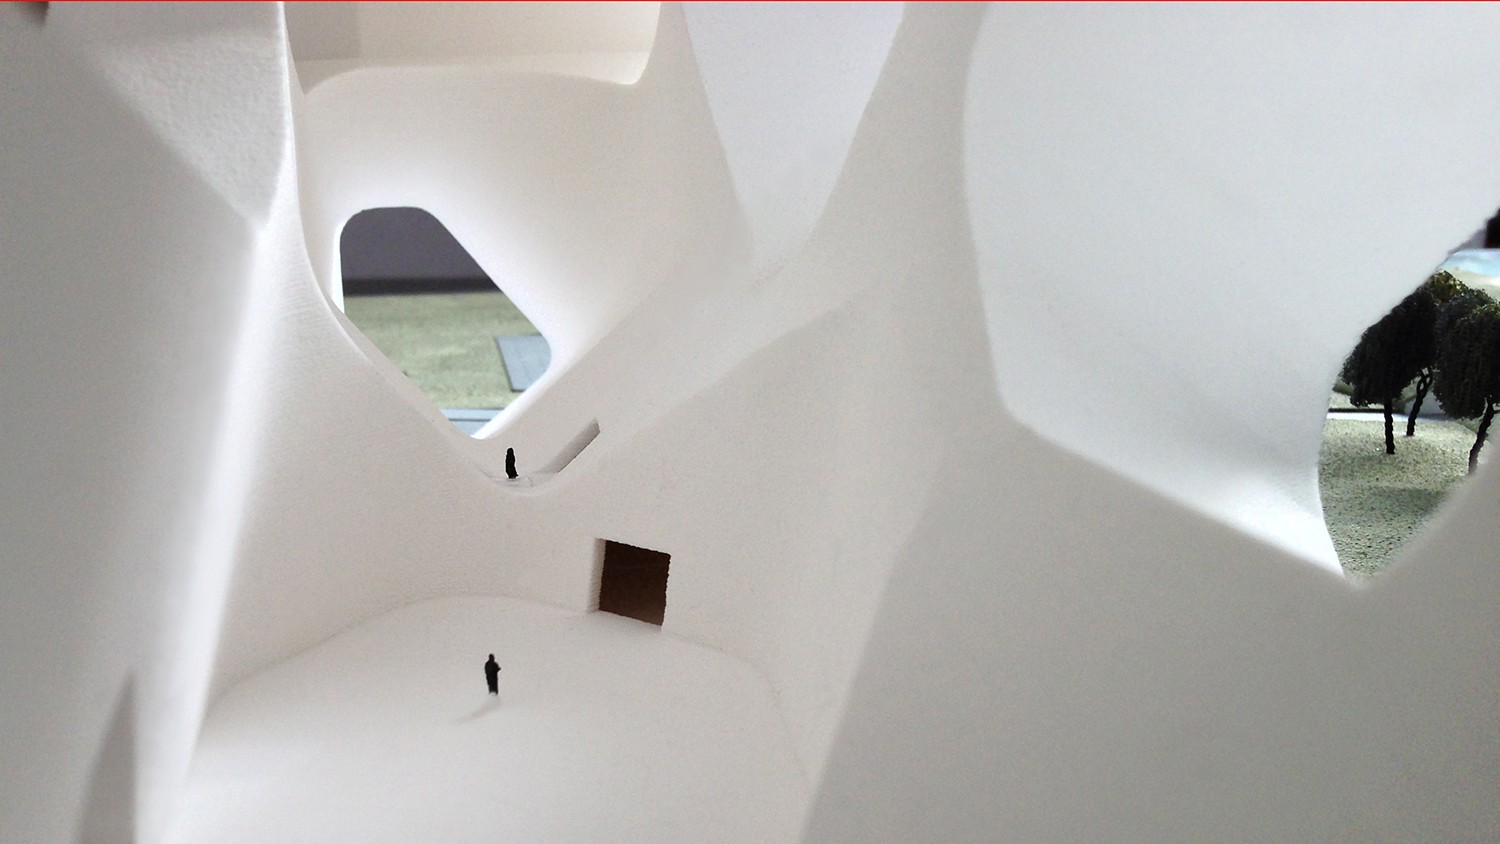 https://s3.us-east-2.amazonaws.com/steven-holl/uploads/projects/project-images/StevenHollArchitects_Tianjin_IMG_0100_WH.jpg